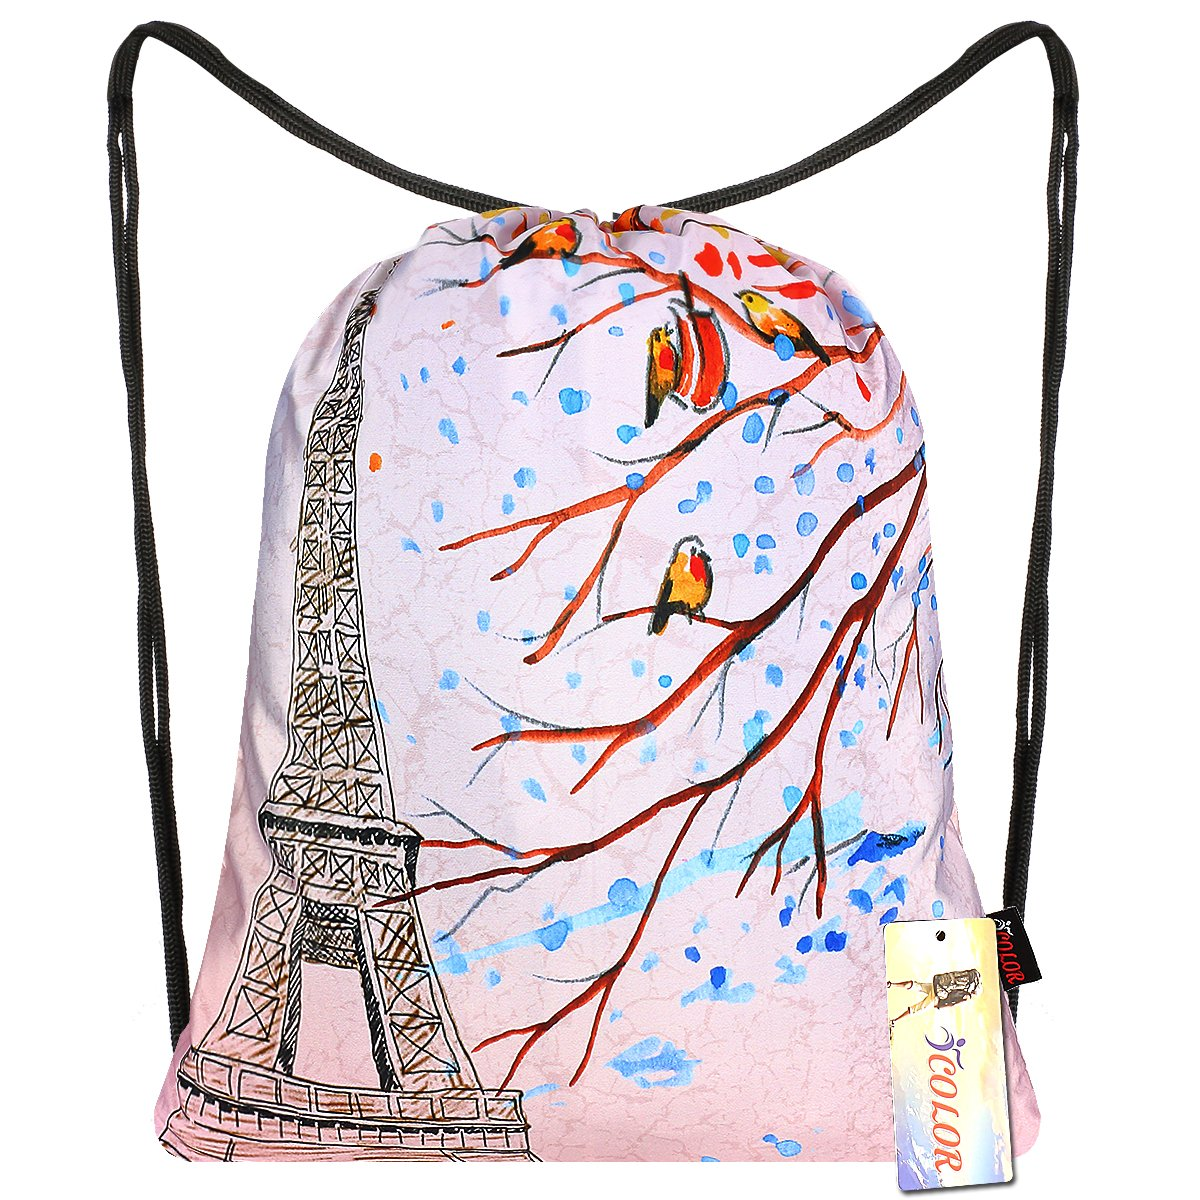 iColor Sport Sackpack,Drawstring Backpack,Stylish Multipurpose Girls Nylon Gym Bags,Teen Yoga Dance Bag,Lightweight Gym Bag for Women Cycling Hiking,Gymsack Travel Daypack 18'' x 13.8'' (Eiffel Tower) by iColor (Image #1)